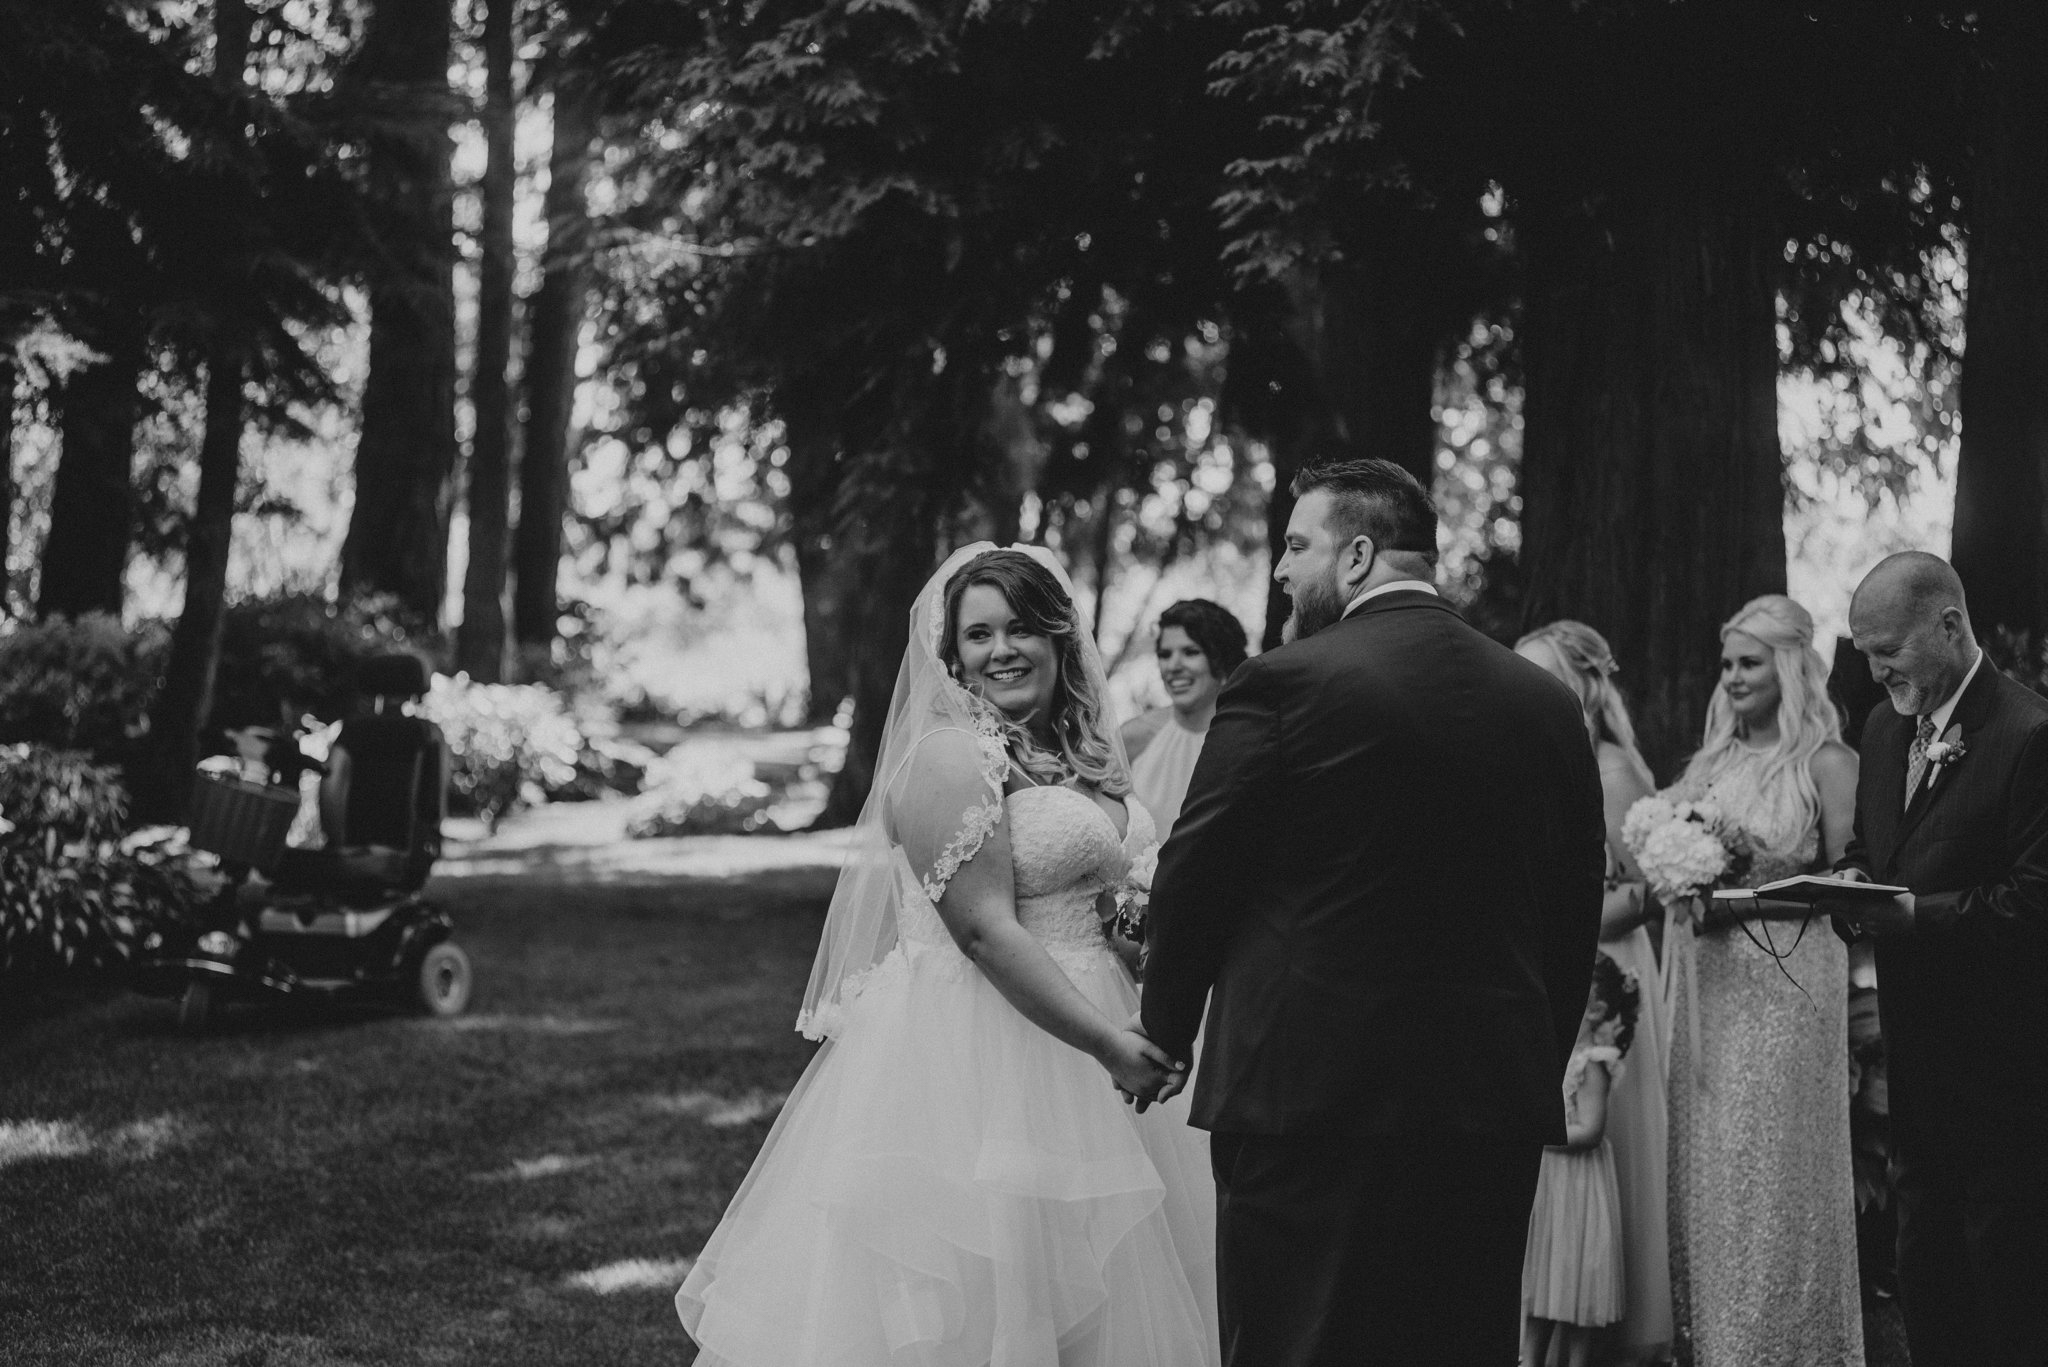 evergreen-gardens-bellingham-wedding-seattle-photographer-caitlyn-nikula-73.jpg